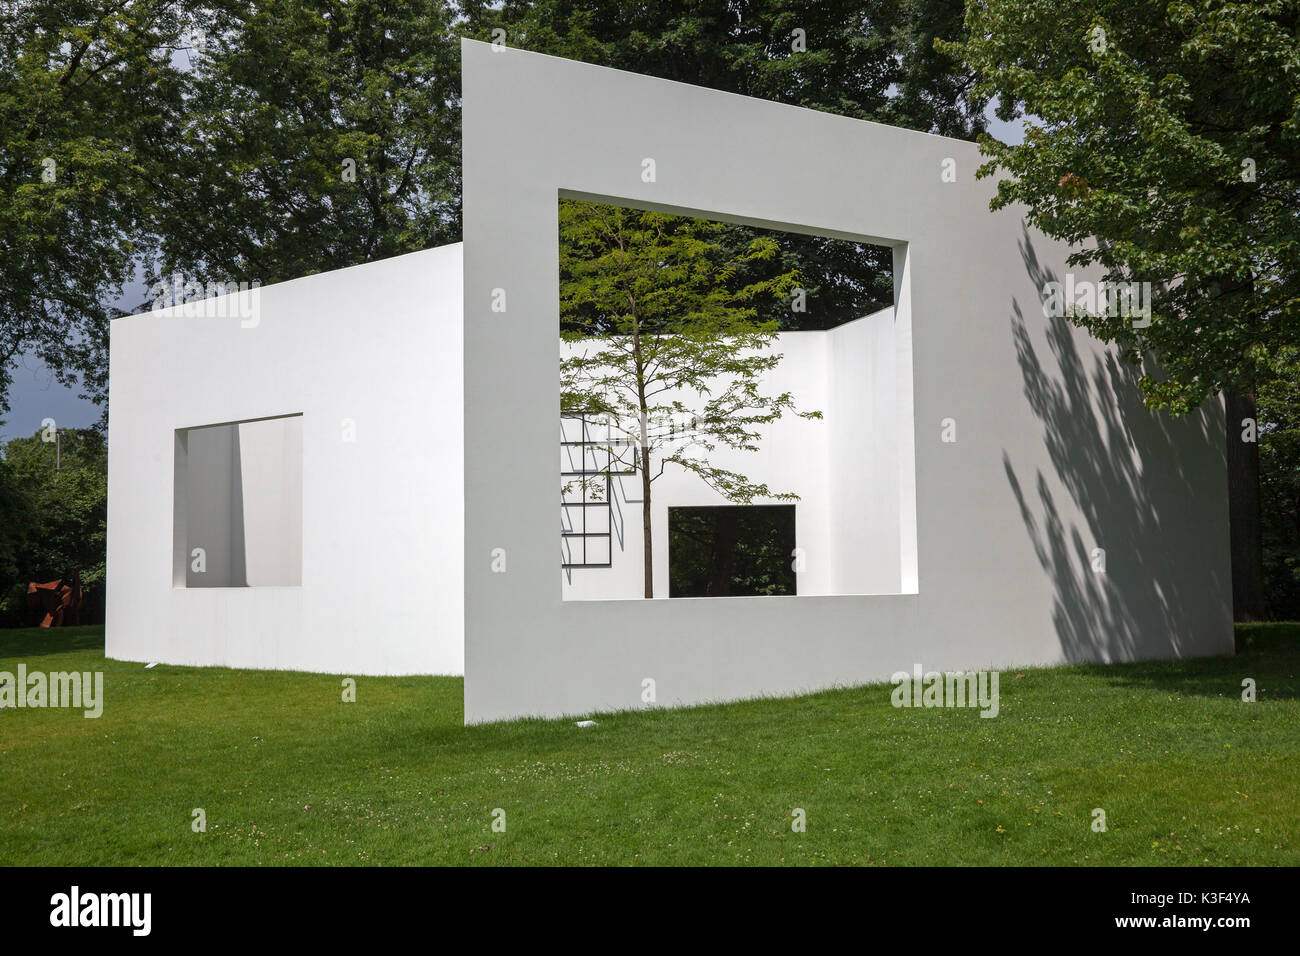 Sculpture garden Gallery of Sou Fujimoto of concrete in the sculpture park Cologne, North Rhine-Westphalia, Germany - Stock Image